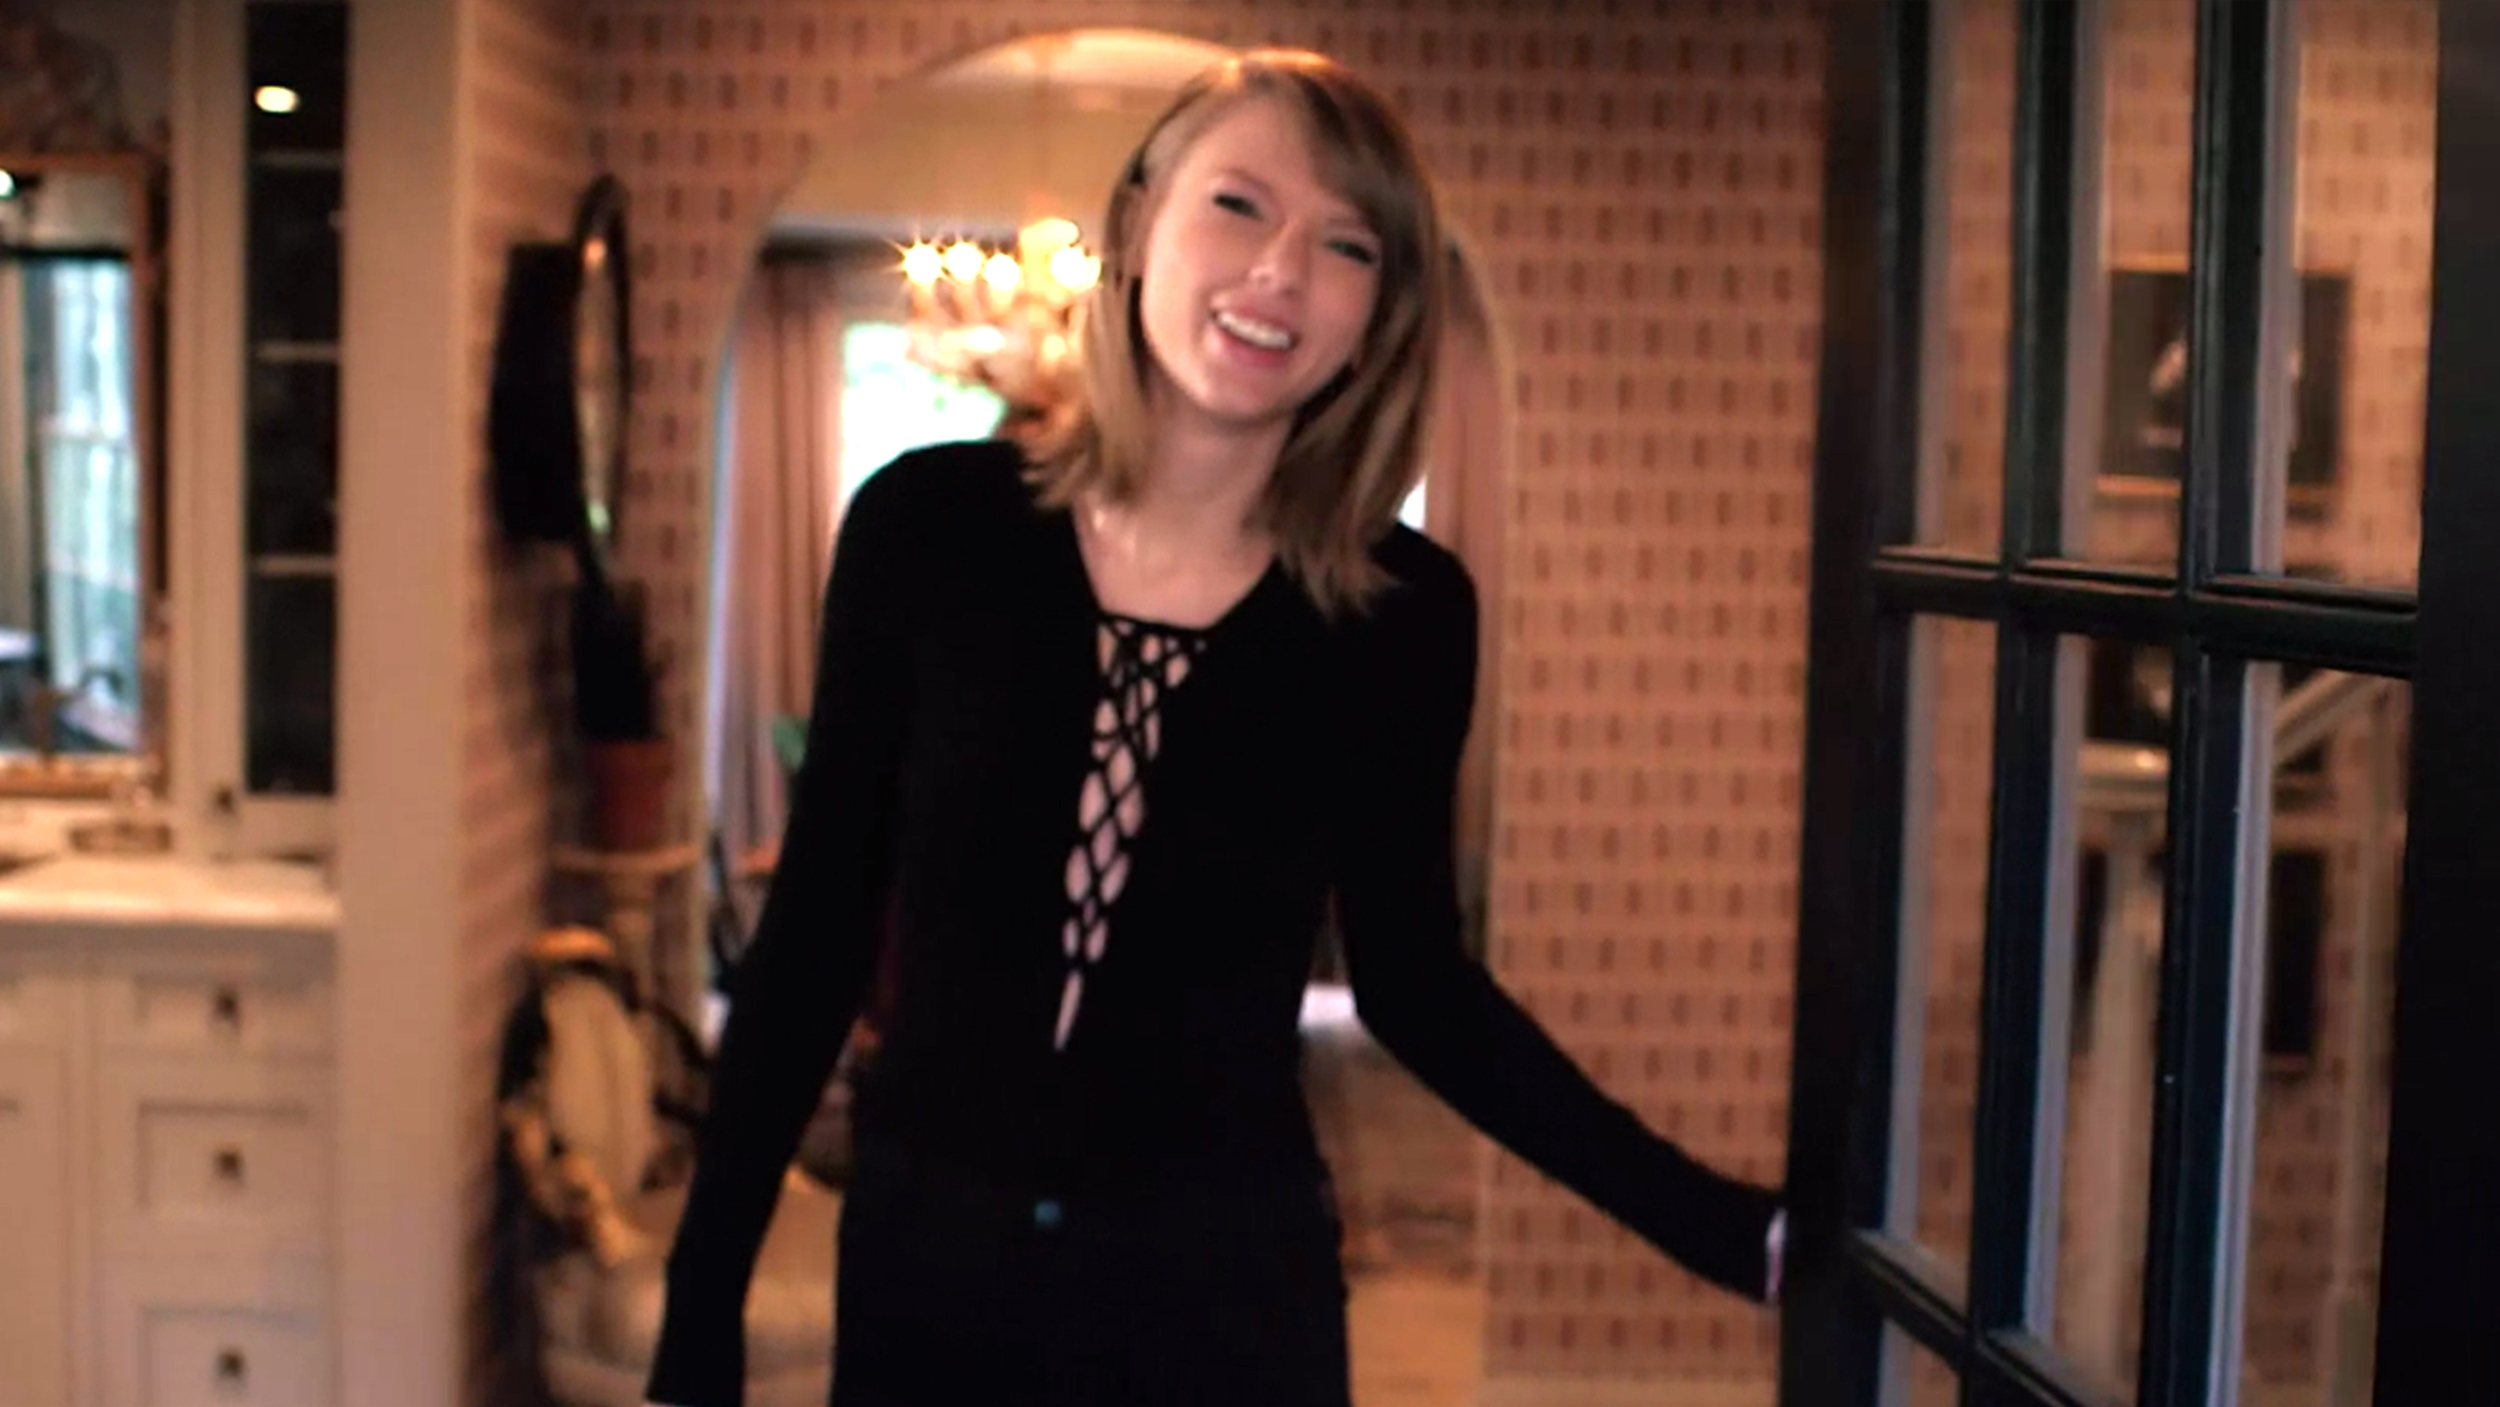 taylor swift gives tour of her california home while